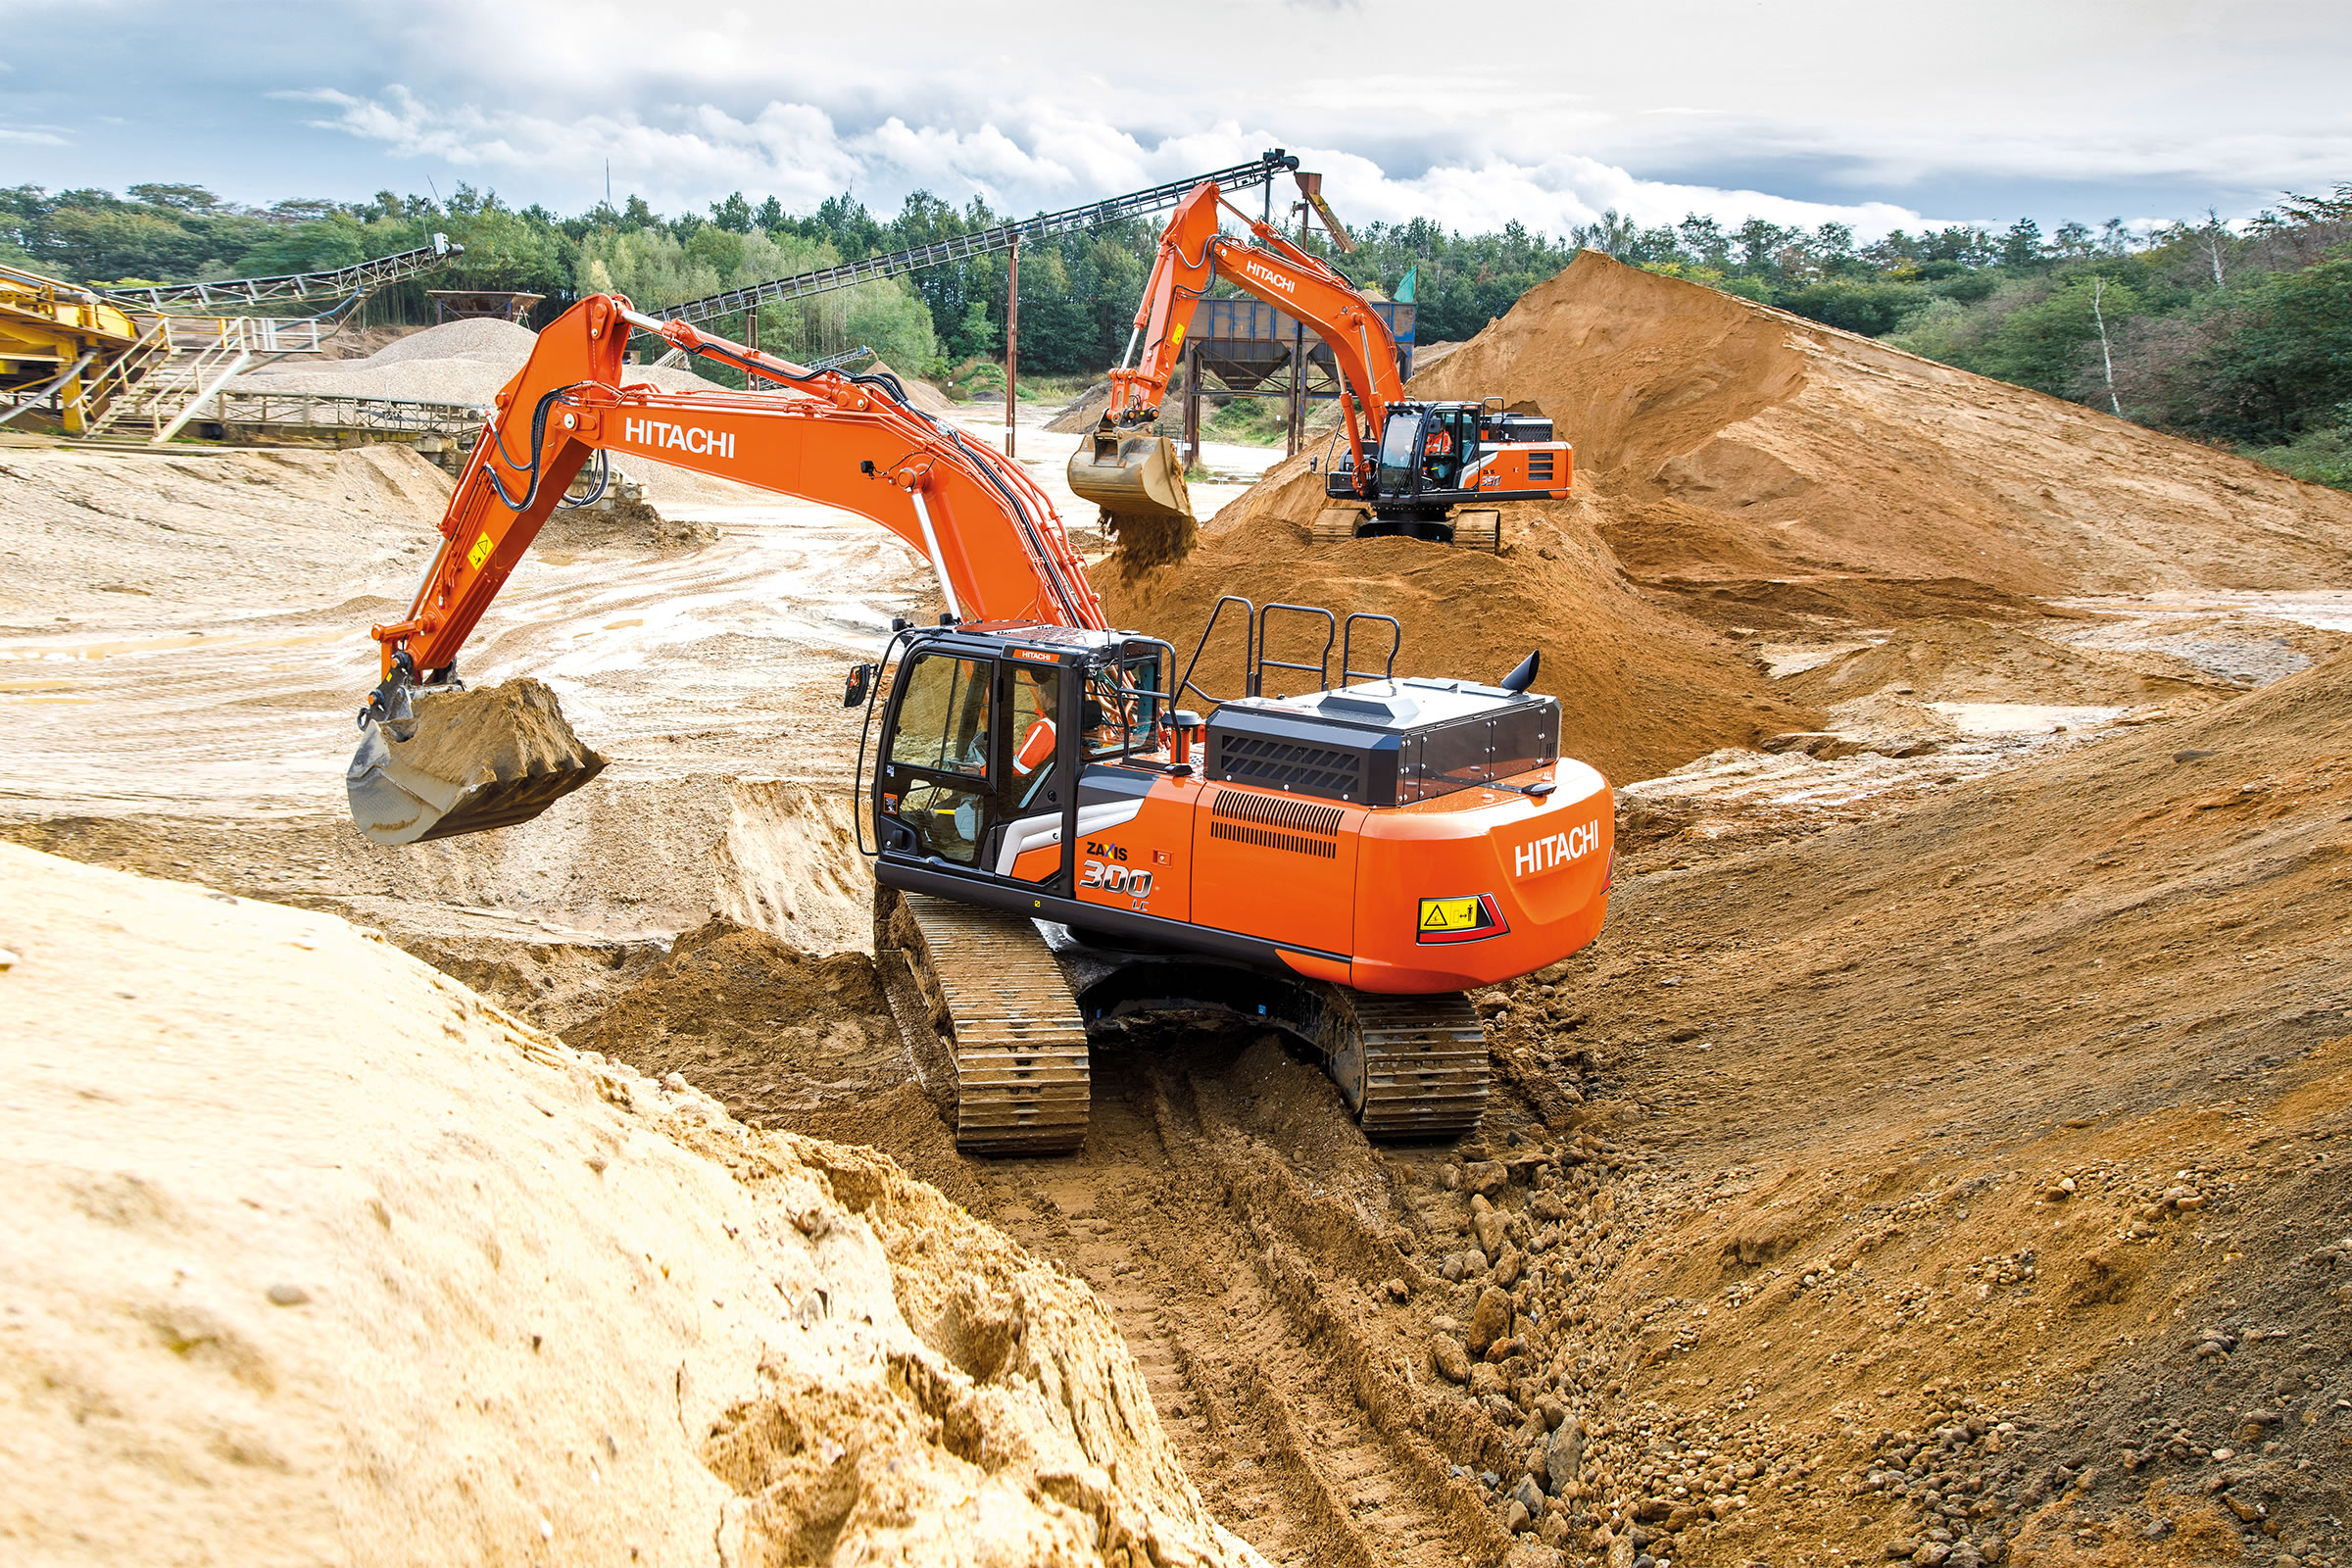 You're in Control with Hitachi Zaxis-7 excavator